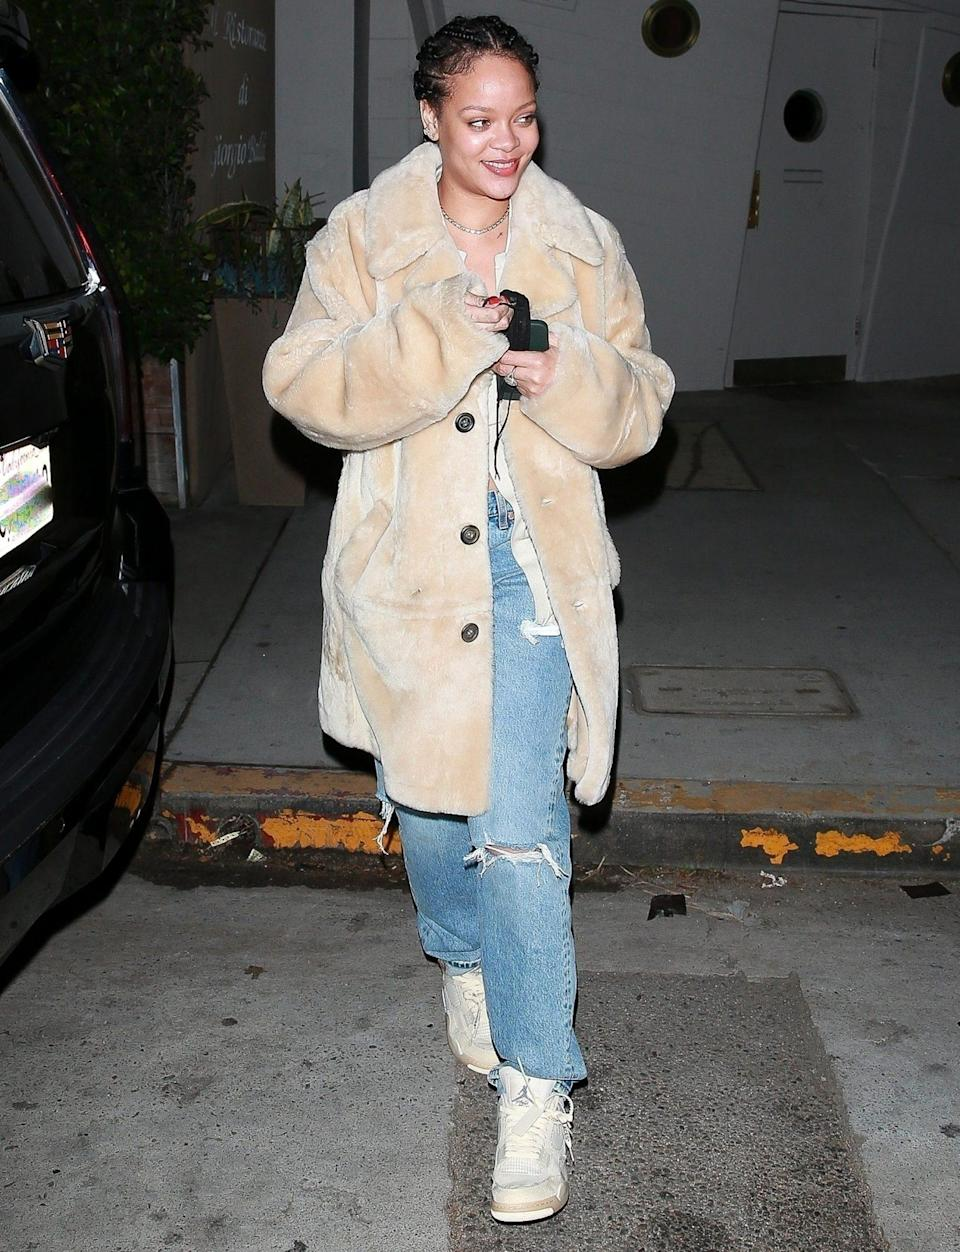 <p>Rihanna leaves dinner at Giorgio Baldi in Santa Monica on Wednesday, wearing a long coat, ripped jeans and sneakers.</p>